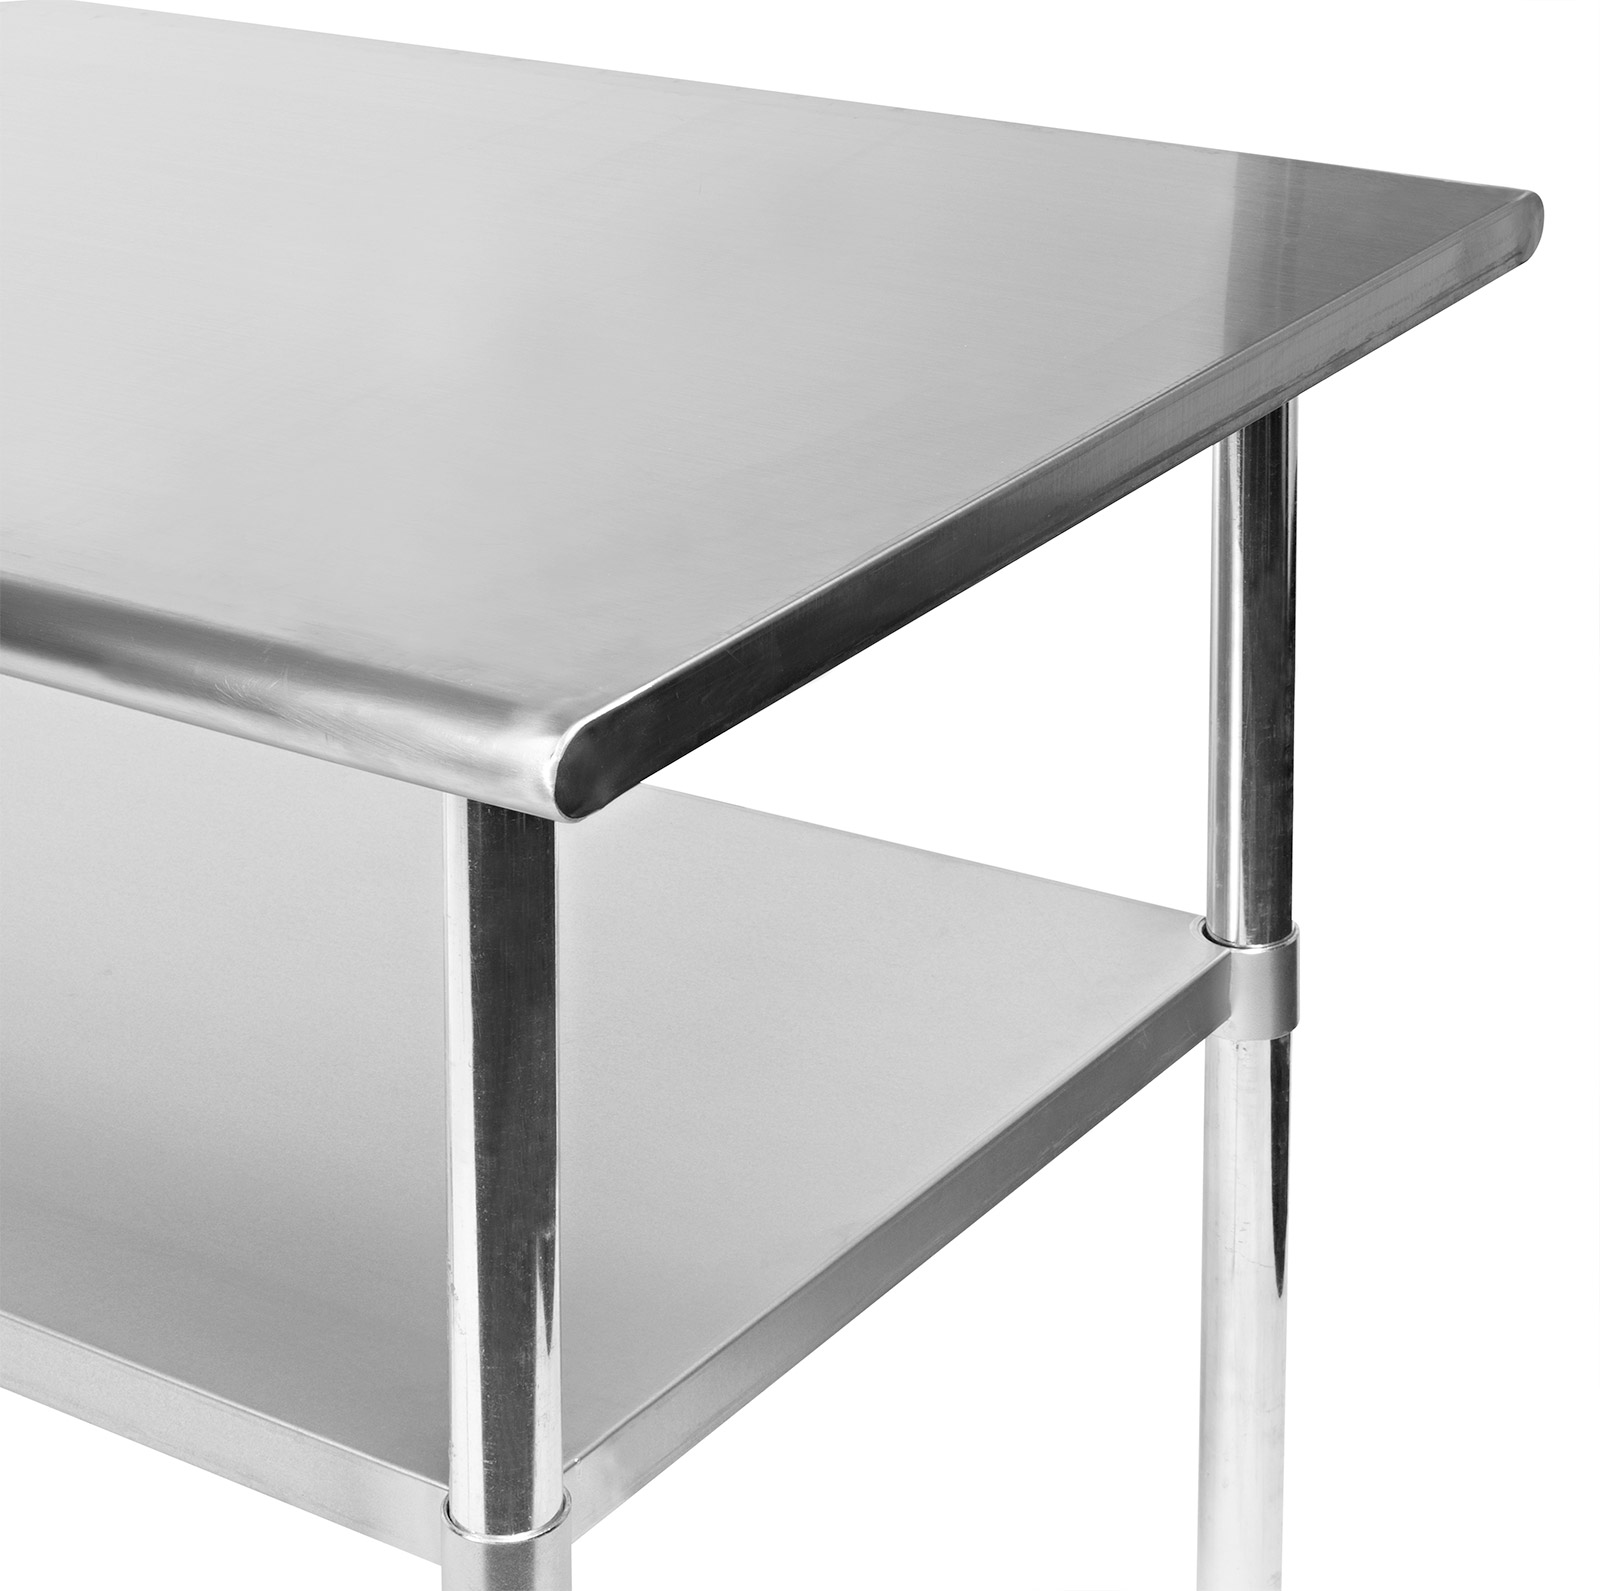 Stainless steel commercial kitchen work food prep table 24 x 30 ebay - Stainless kitchen tables ...